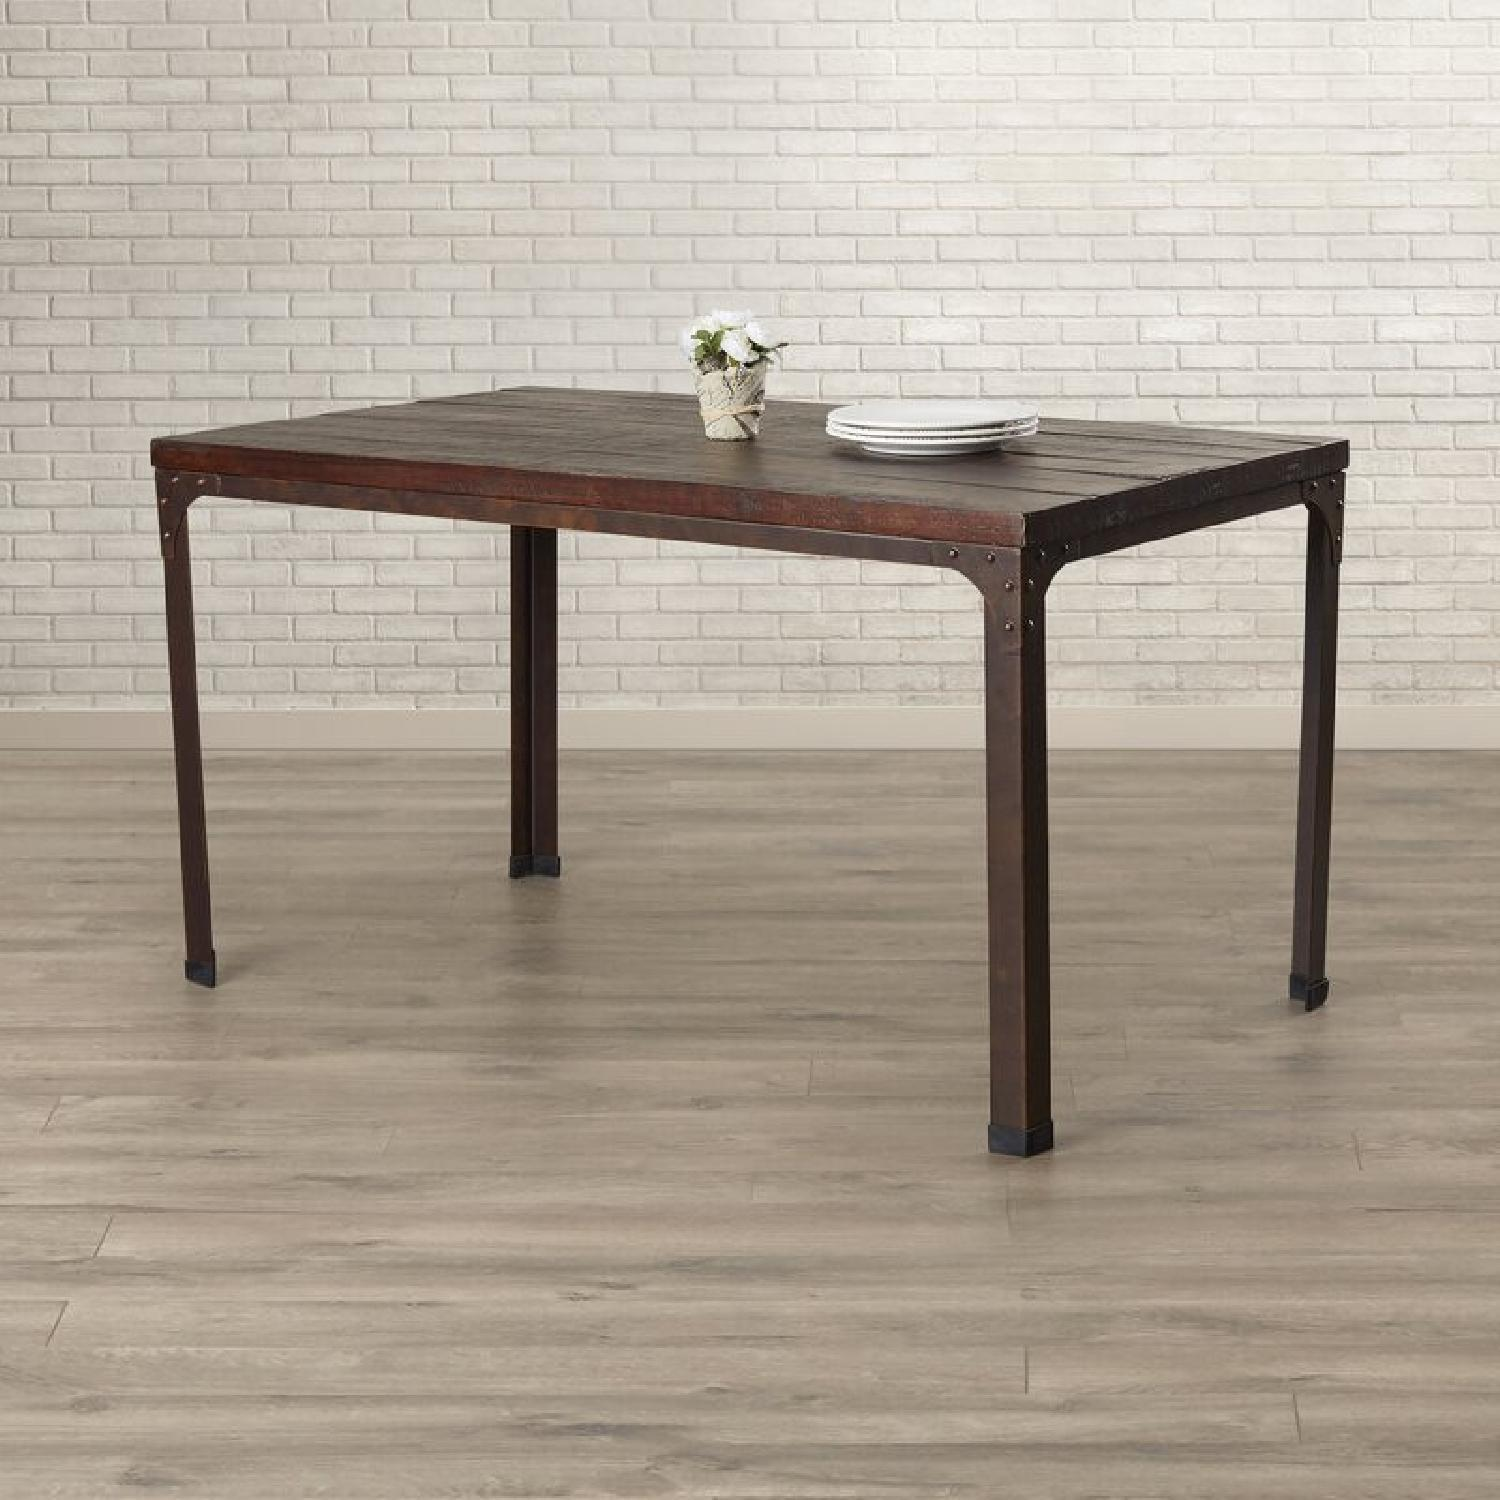 17 Stories D'Alotto Dining Table - image-2